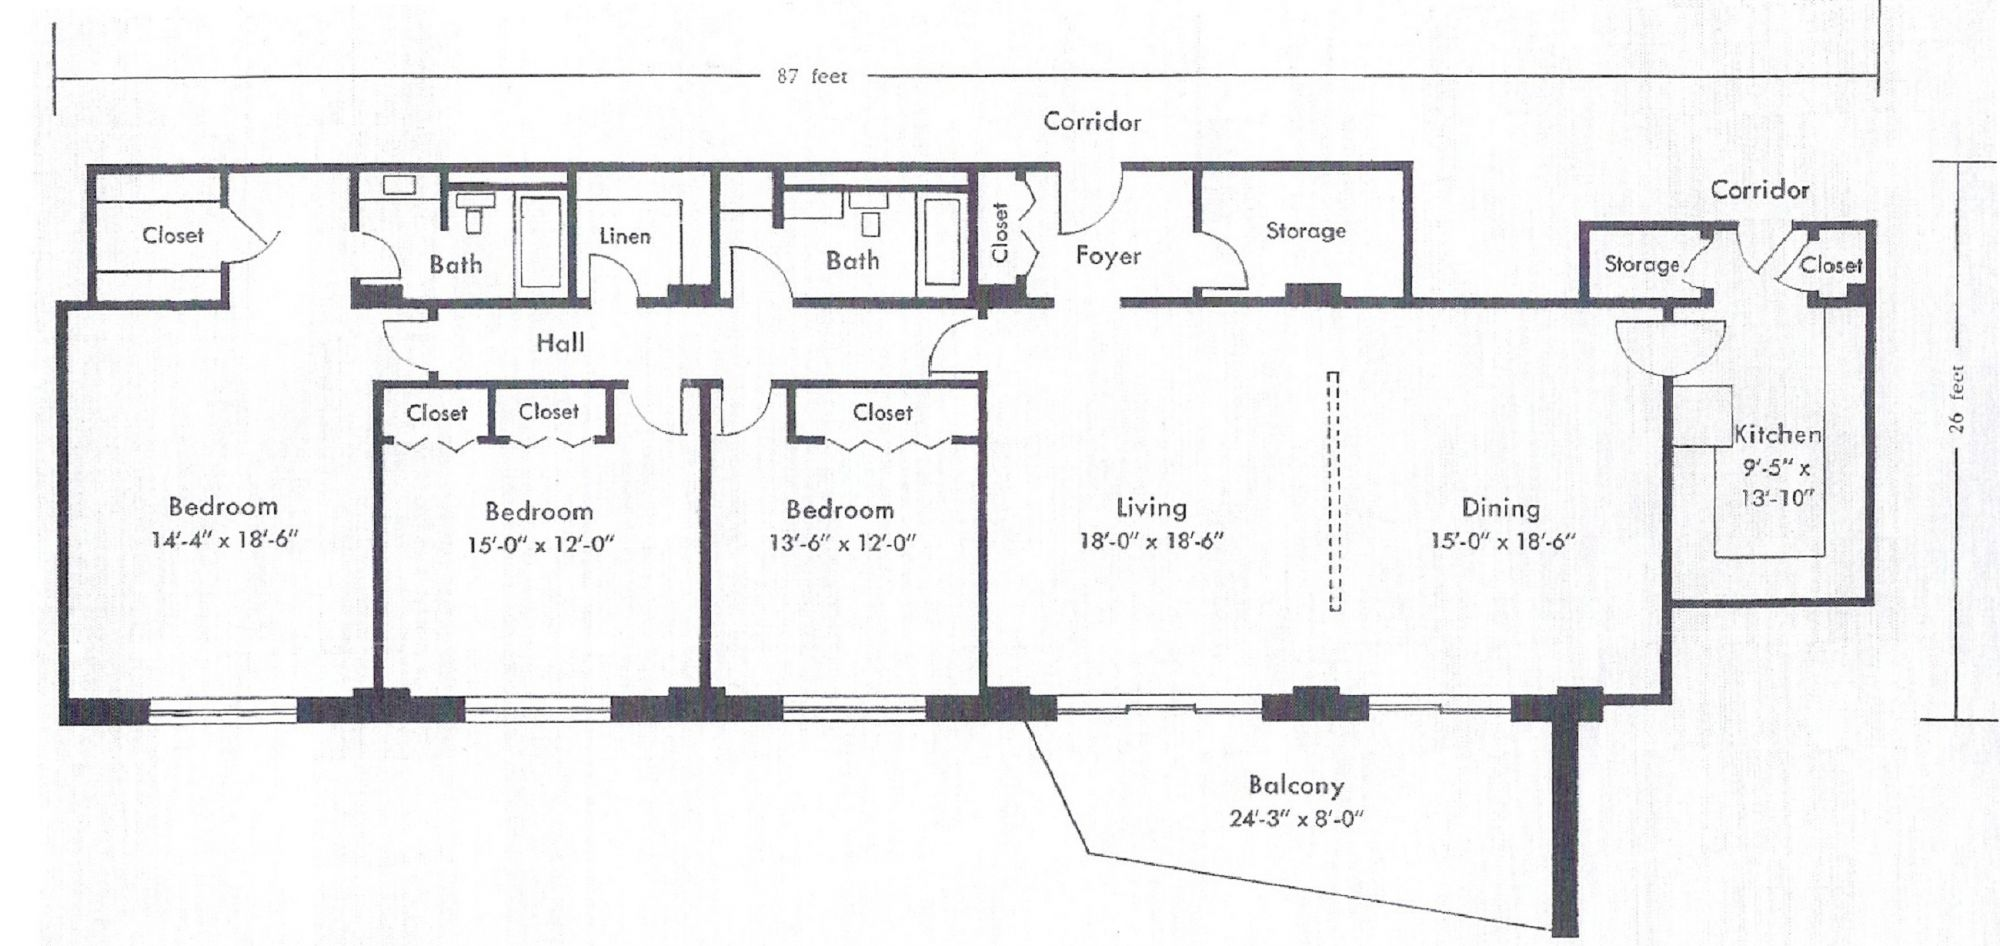 3 Bedroom West Floor Plan